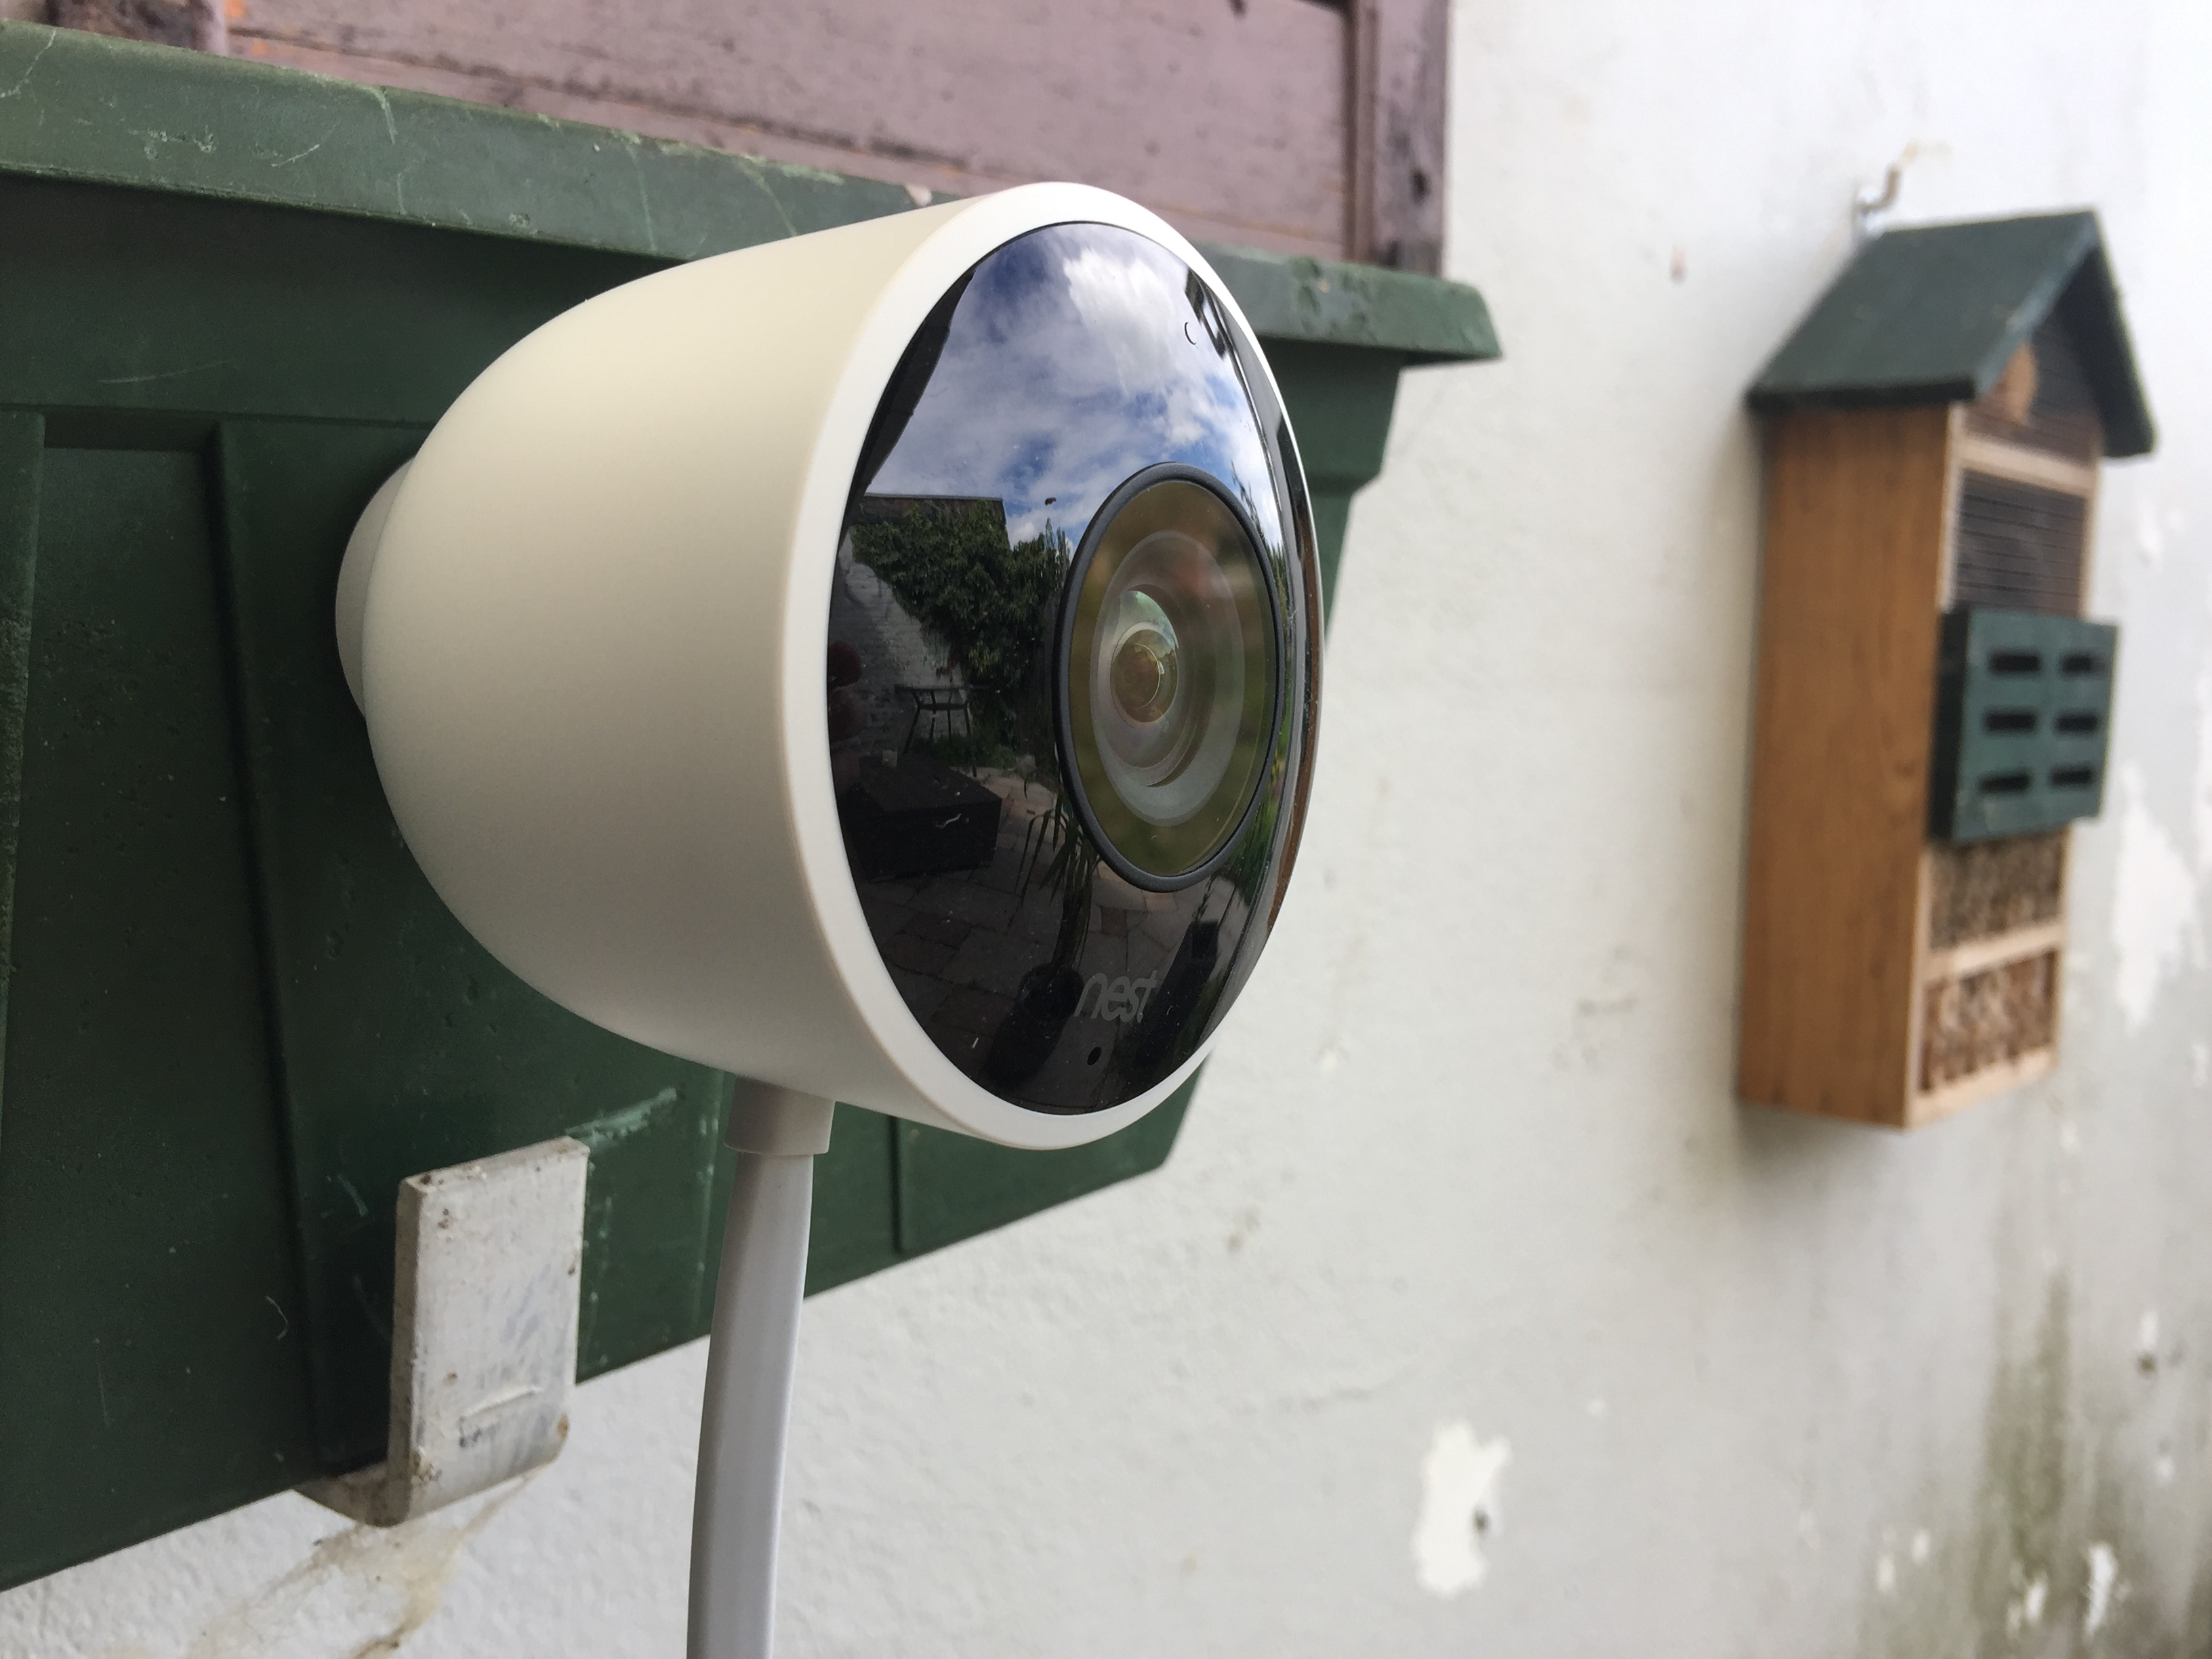 http://techgaming.nl/image_uploads/reviews/Nestcam-outdoor/low3.JPG